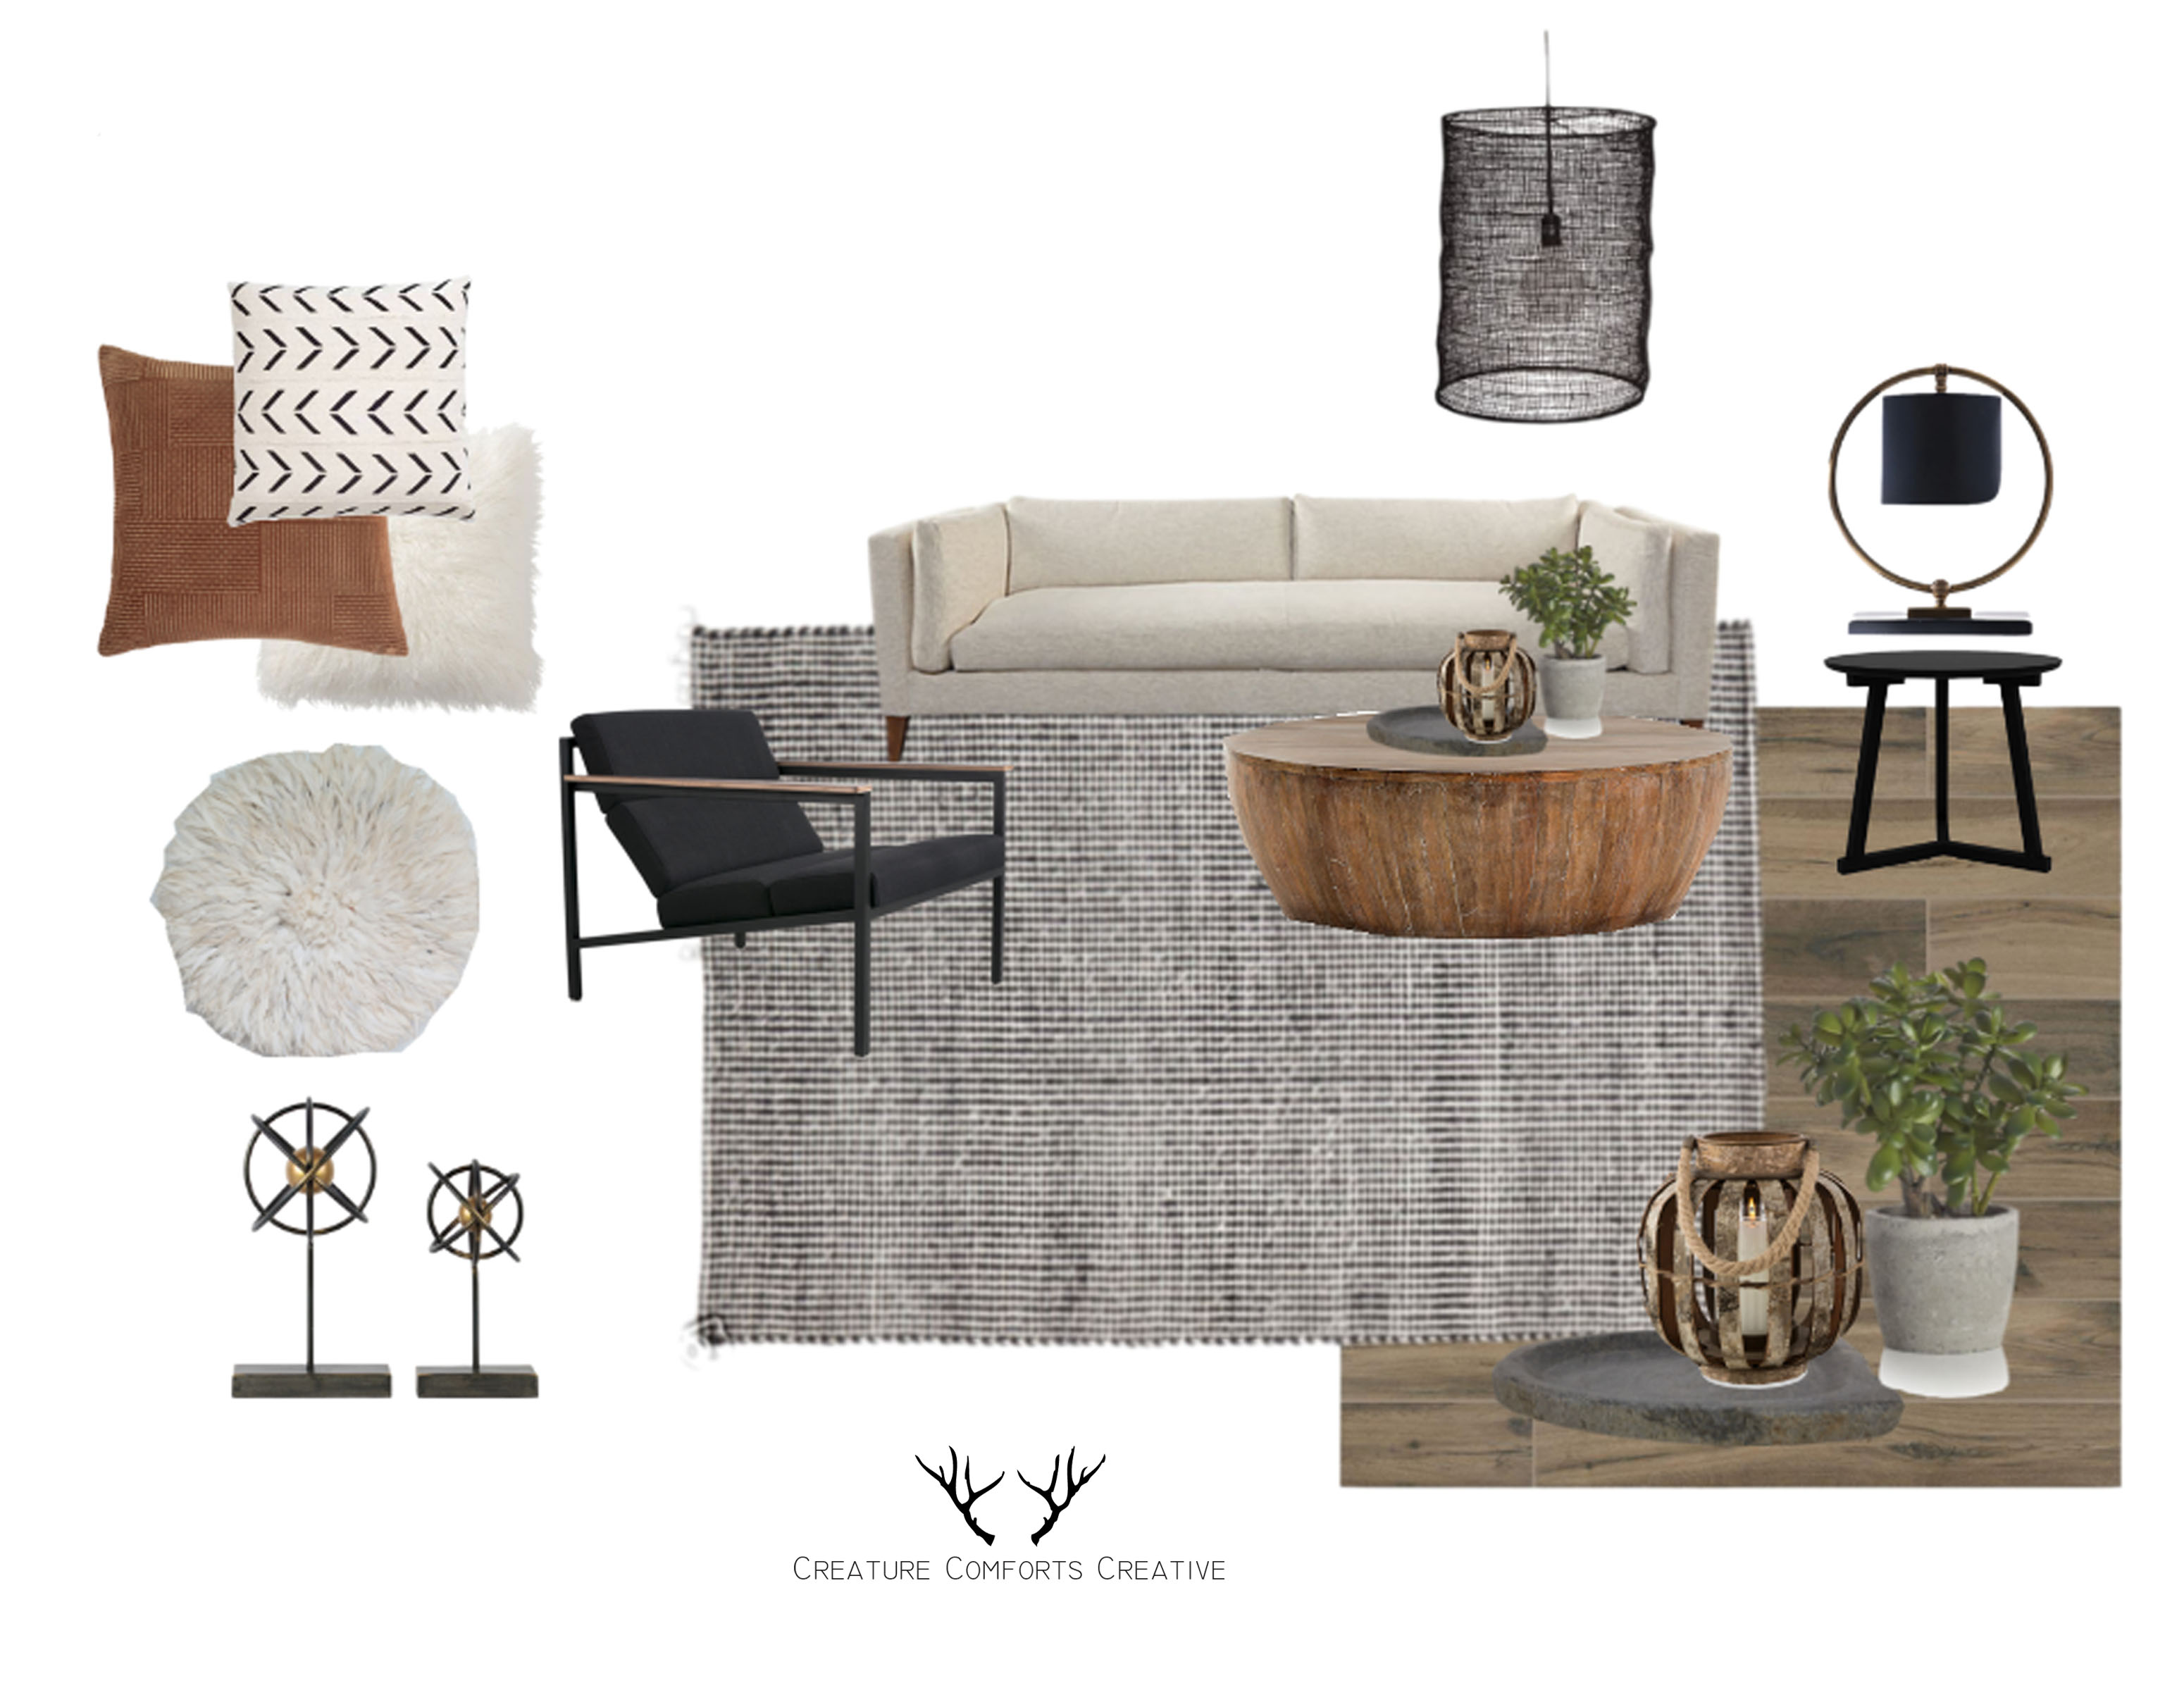 Using A Mixture Of Square And Rounded Furniture, Delicately Balance Modern  Styles With Organic Shapes And Textures, Allowing Tribal ...